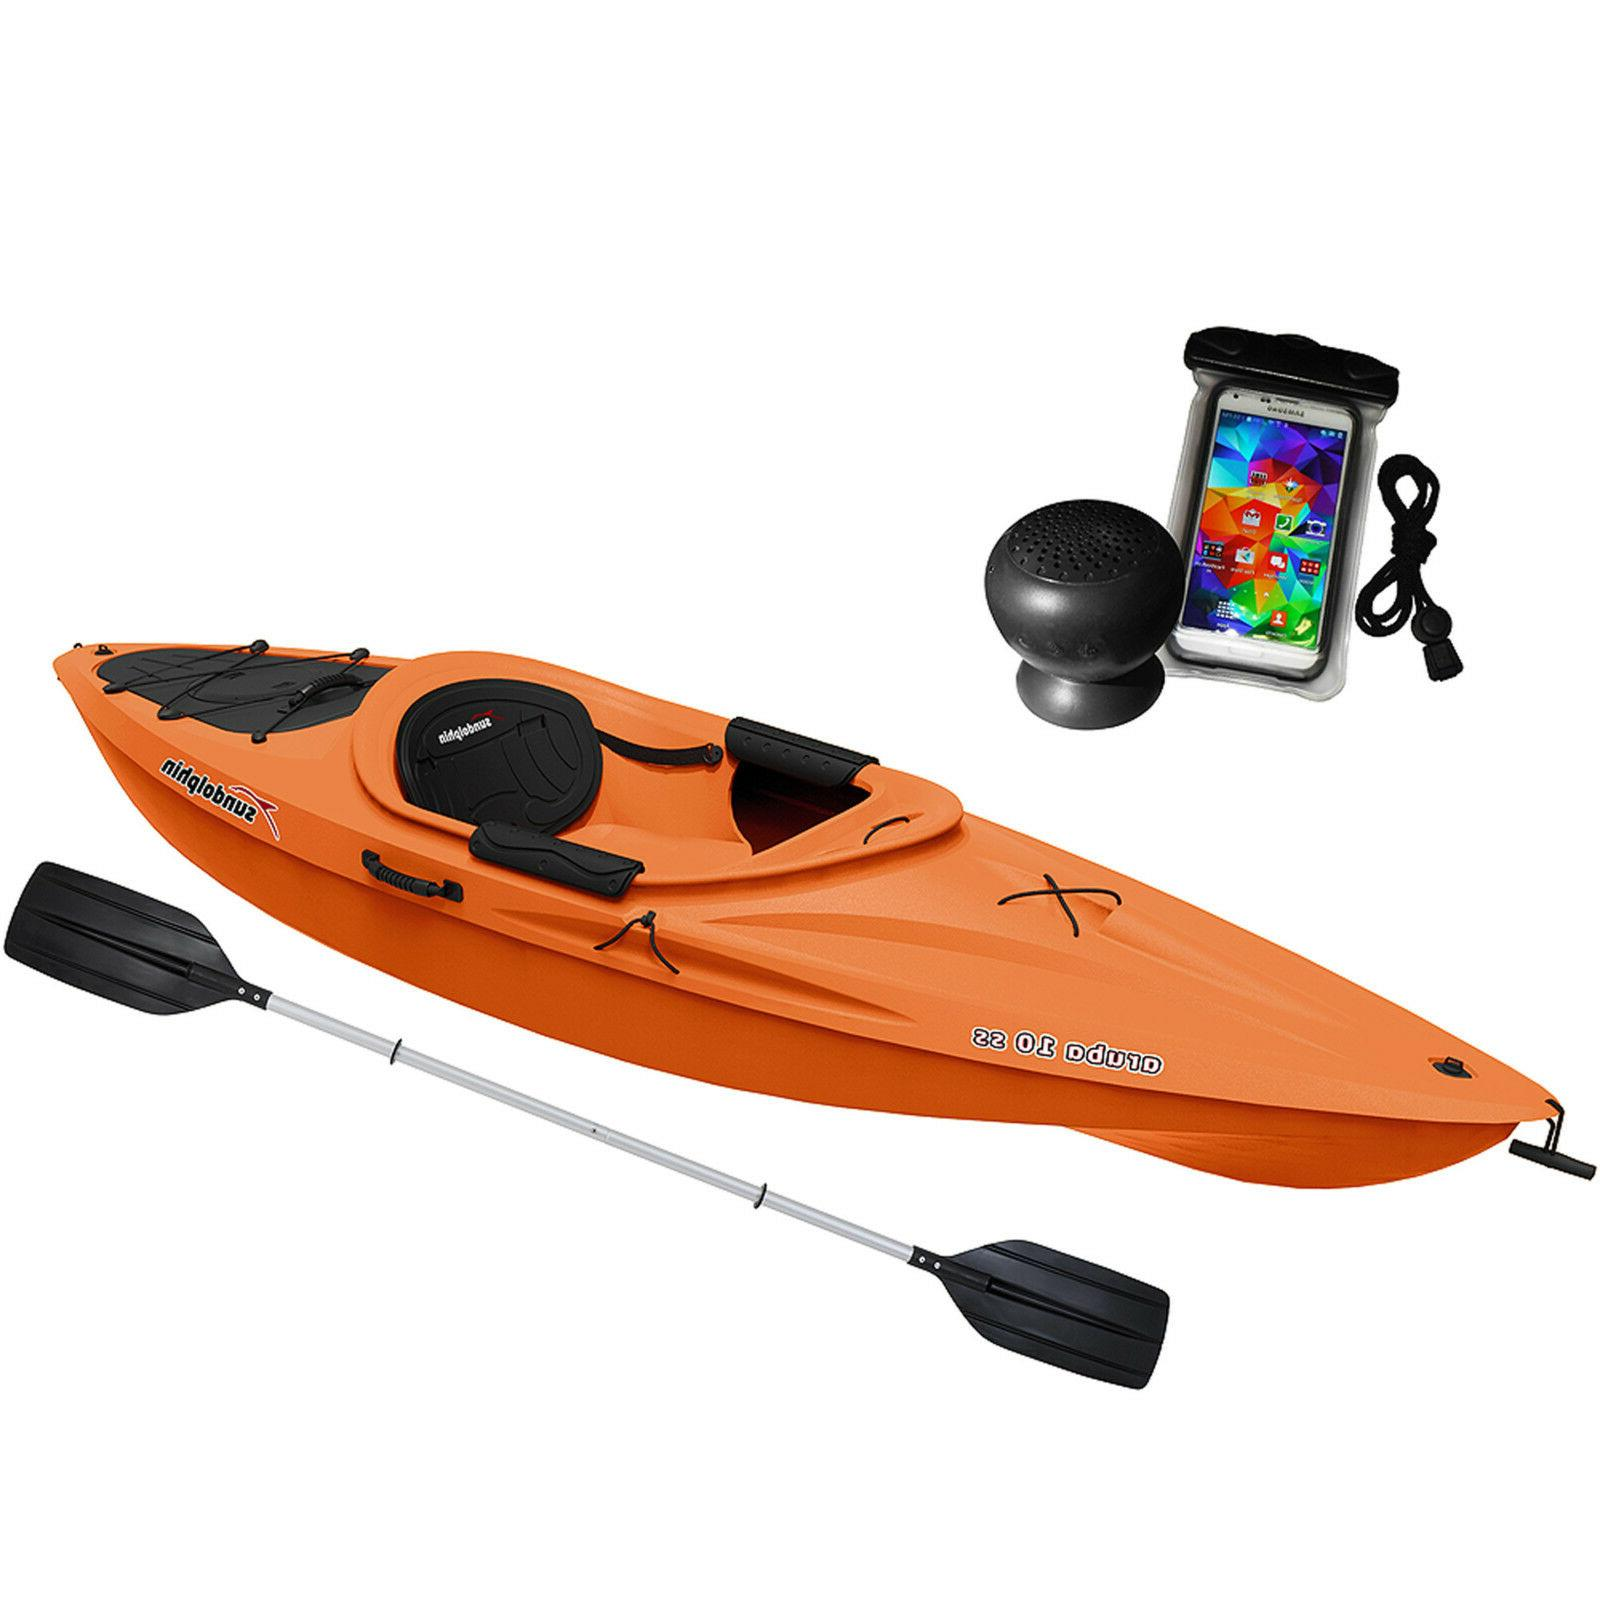 Sun Dolphin Aruba 10 SS with Speaker and Bag Paddle Included